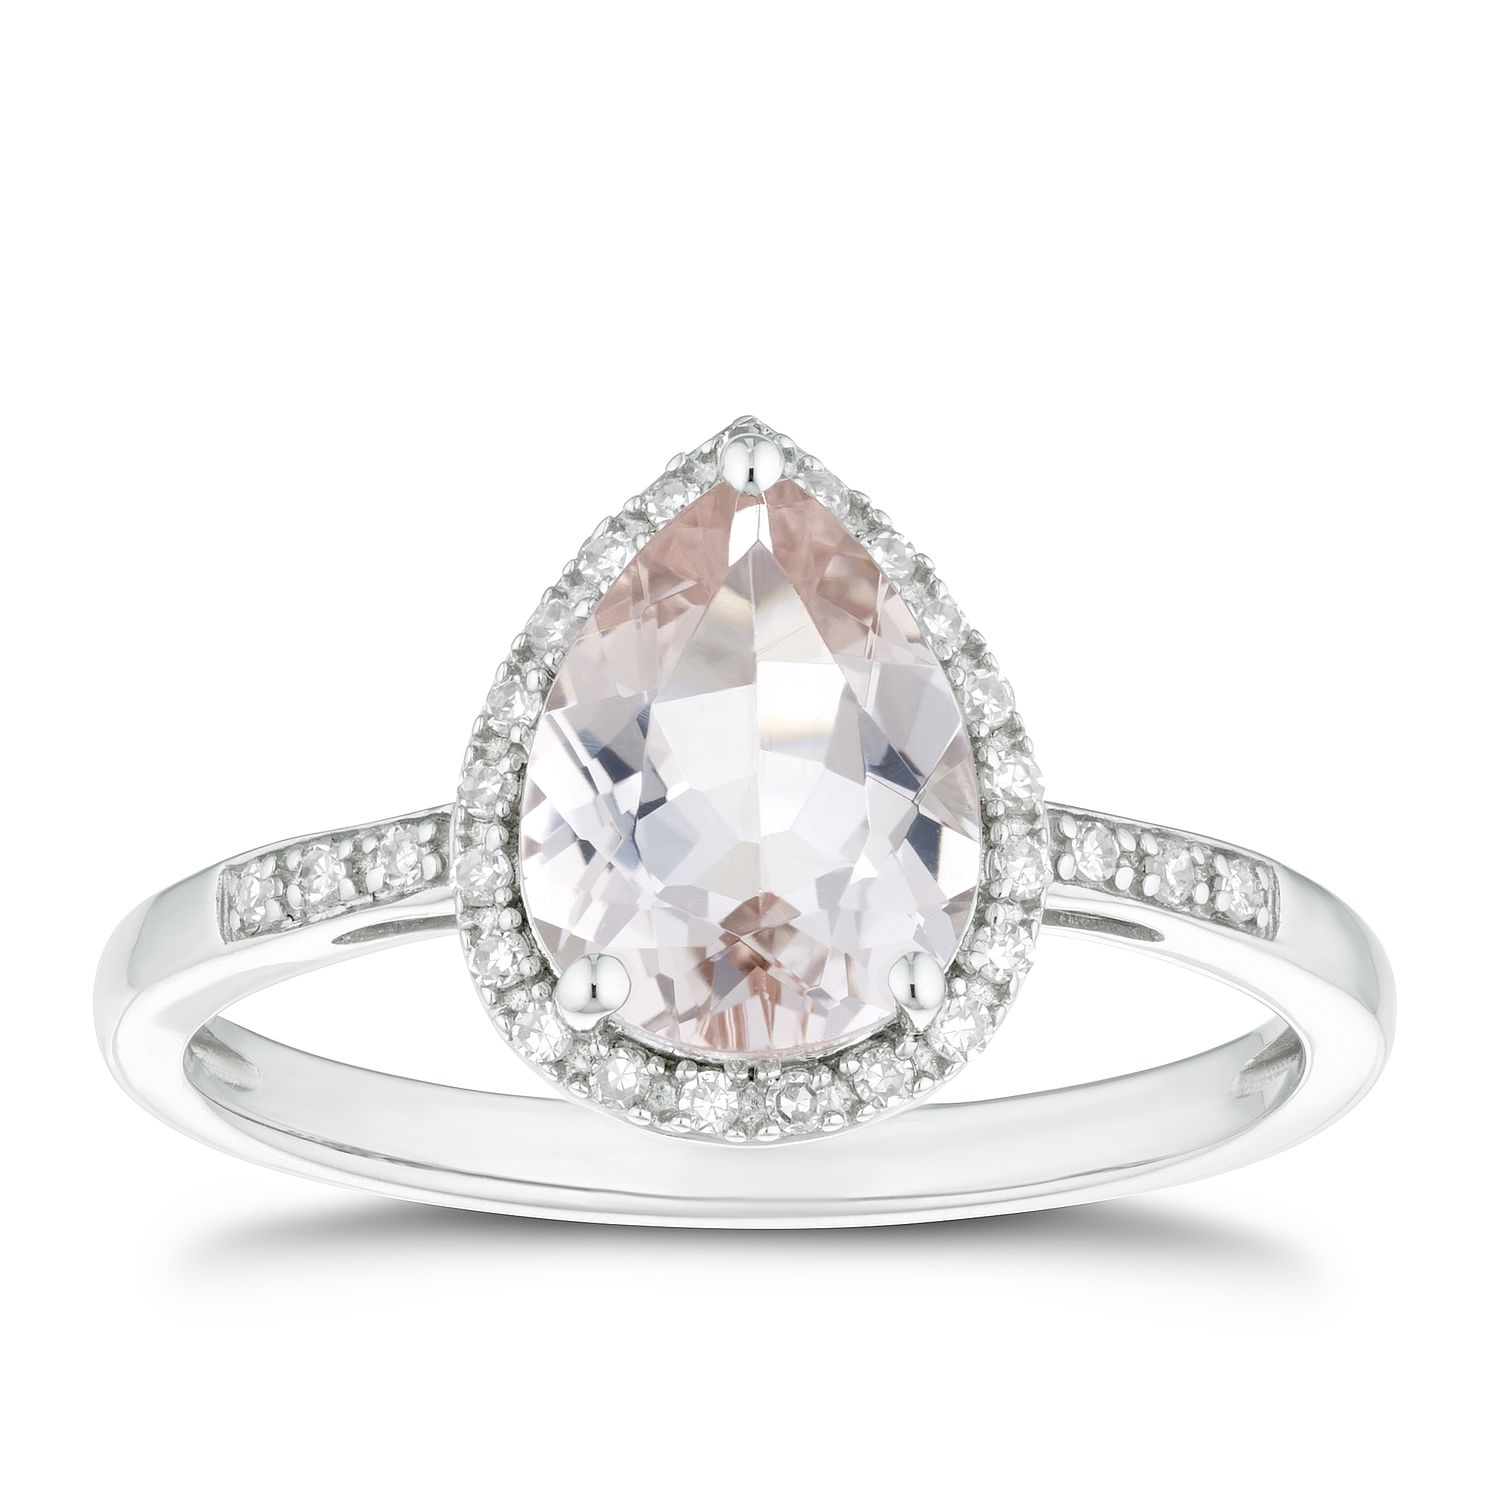 9ct White Gold 1/10ct Diamond & Morganite Pear Ring - Product number 4271270